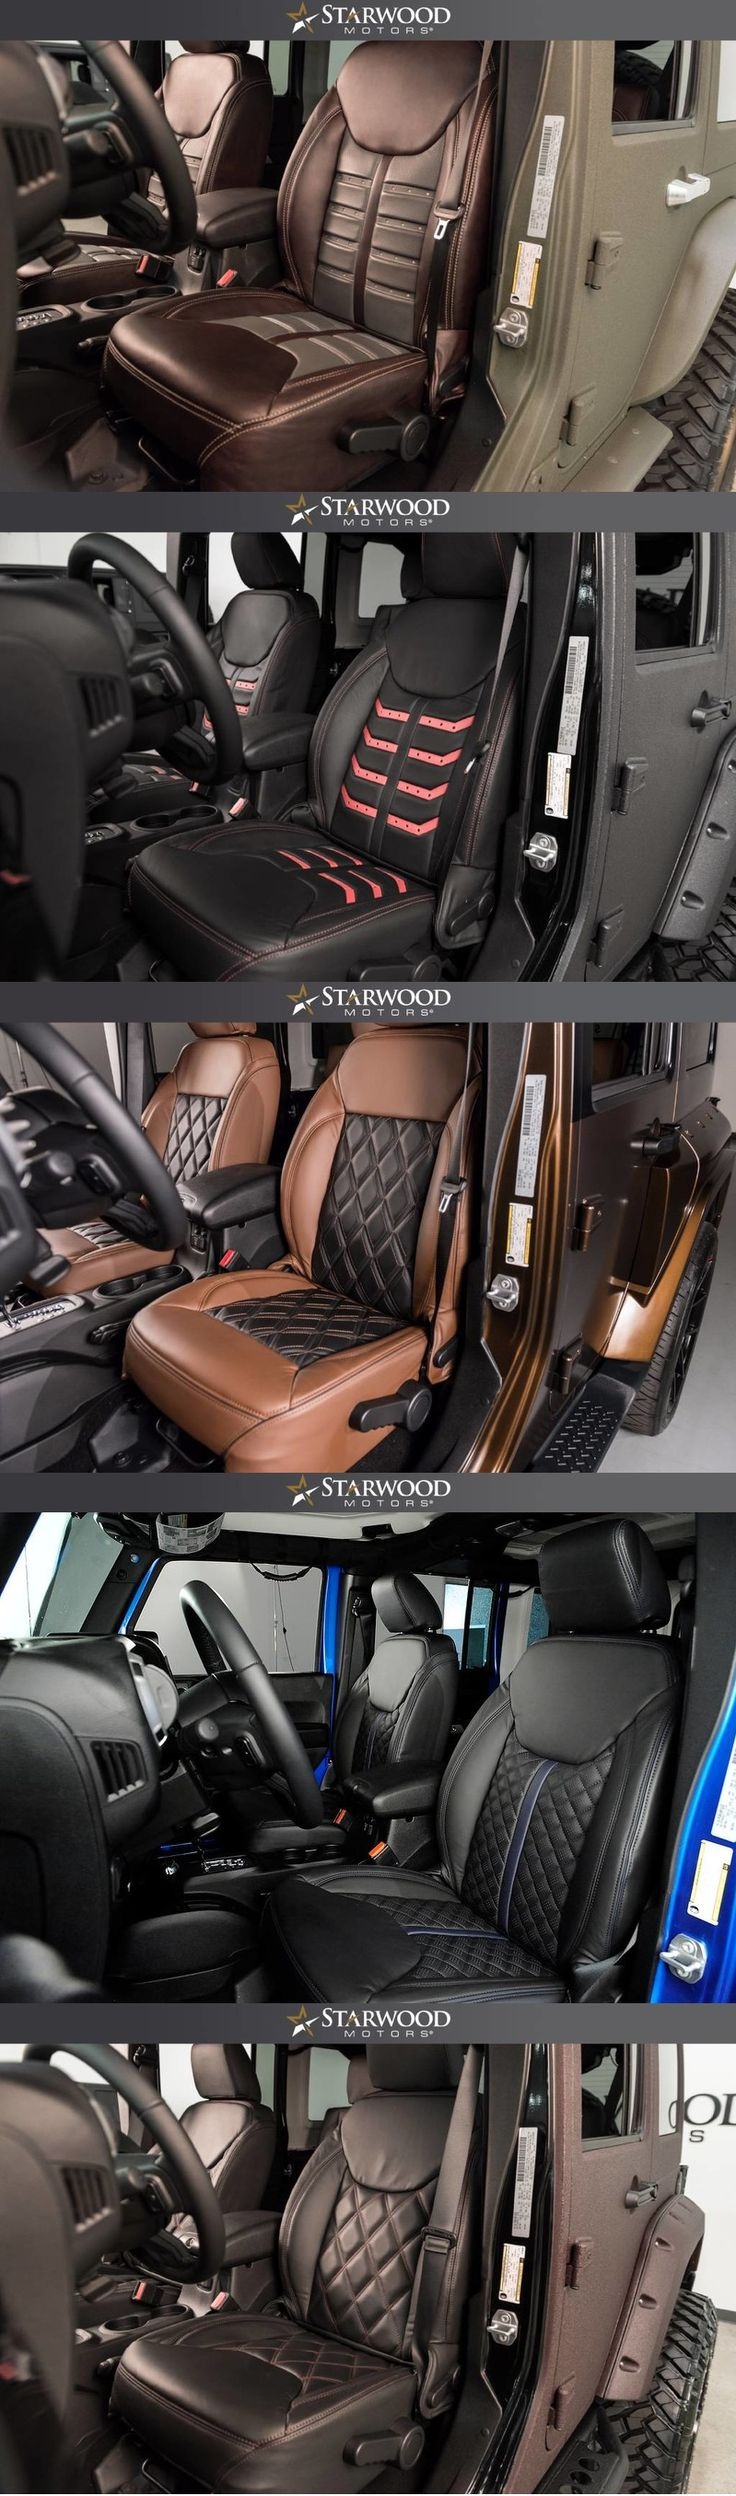 Starwood Motors leather interiors Get the seat covers here: http://amzn.to/2ui3KRU